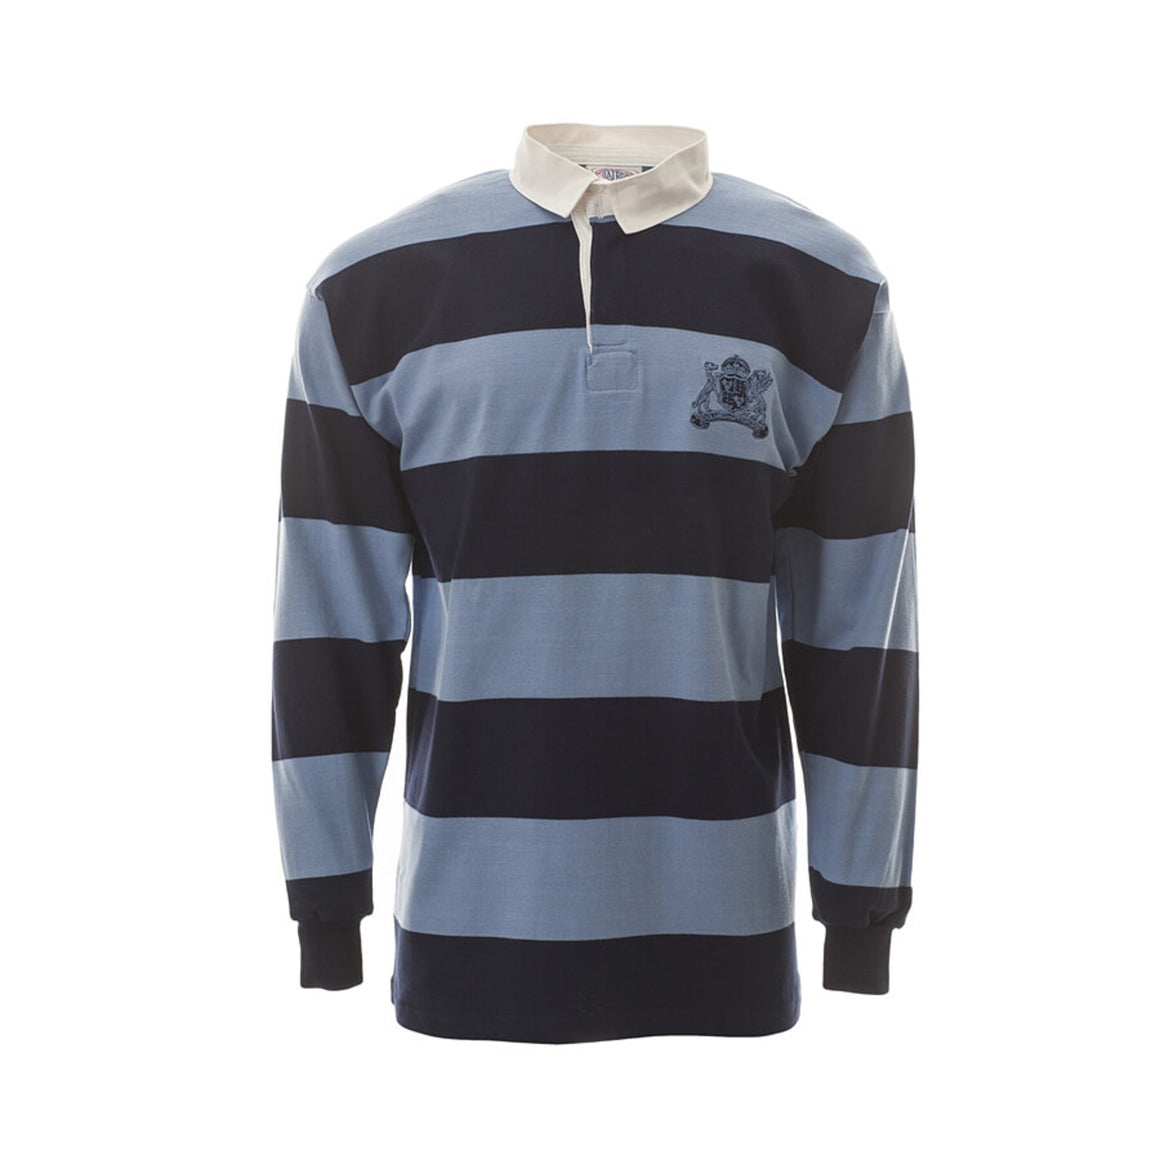 Old Ipswichian Rugby Shirt in Blue